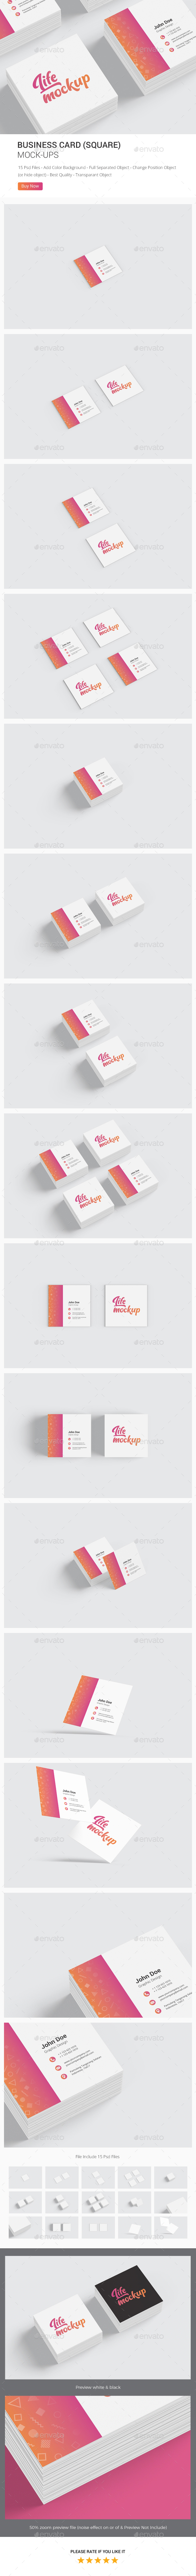 Business Card Square Mockup - Business Cards Print